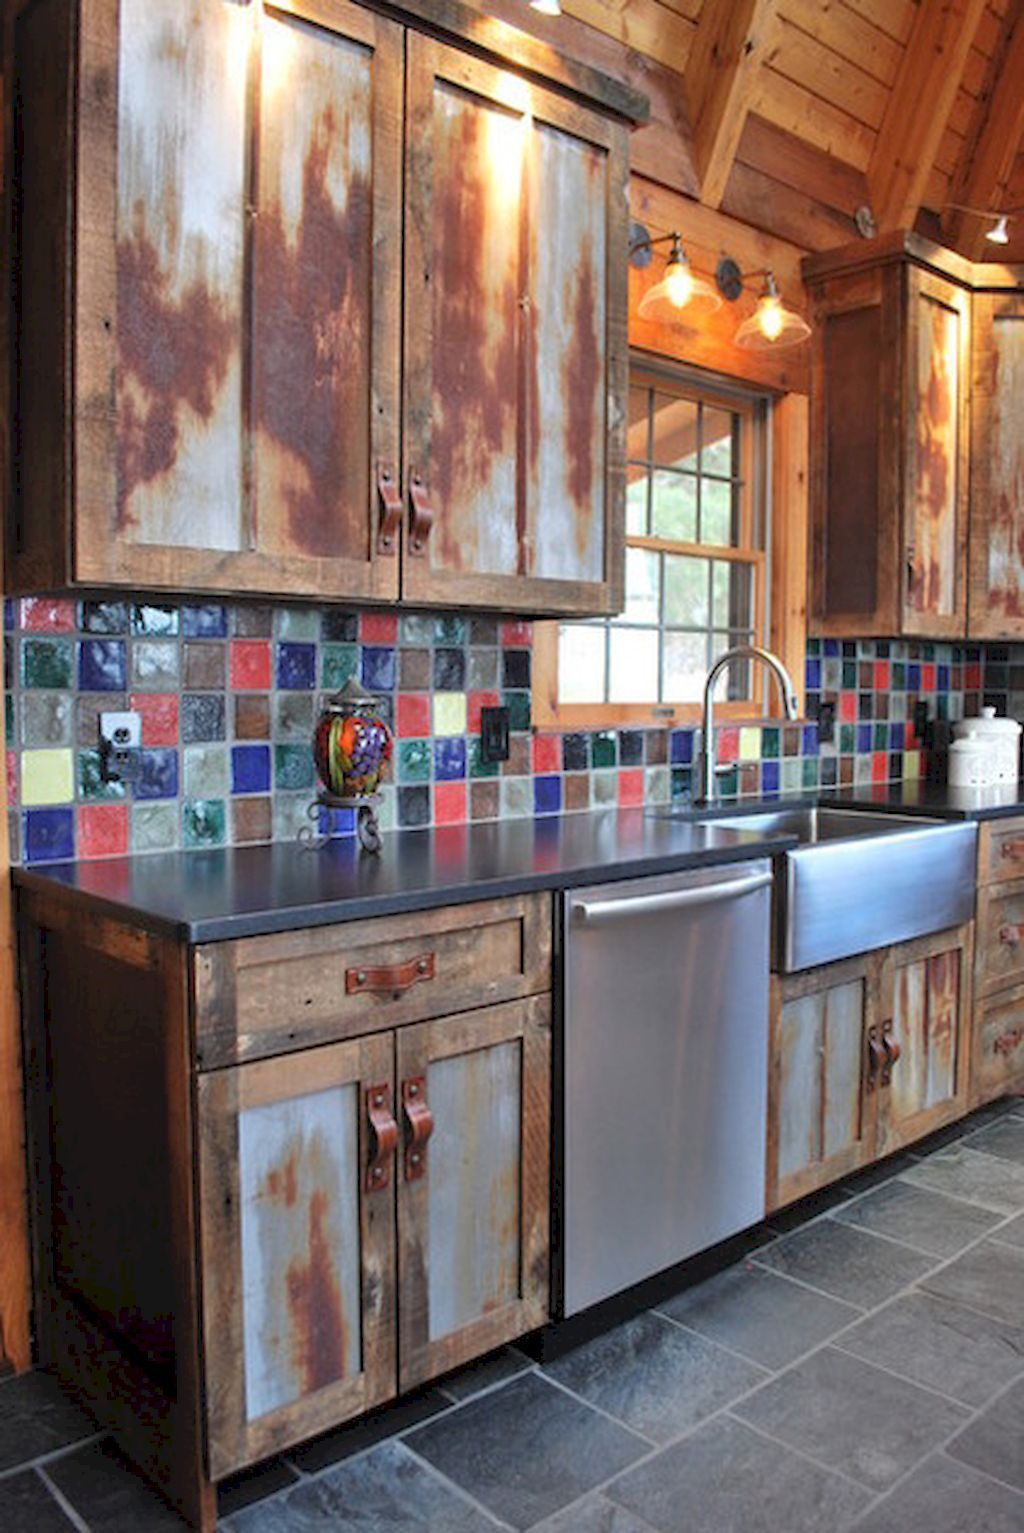 cool 90 rustic kitchen cabinets farmhouse style ideas https livingmarch com 90 rustic kitchen on kitchen cabinets rustic farmhouse style id=88104